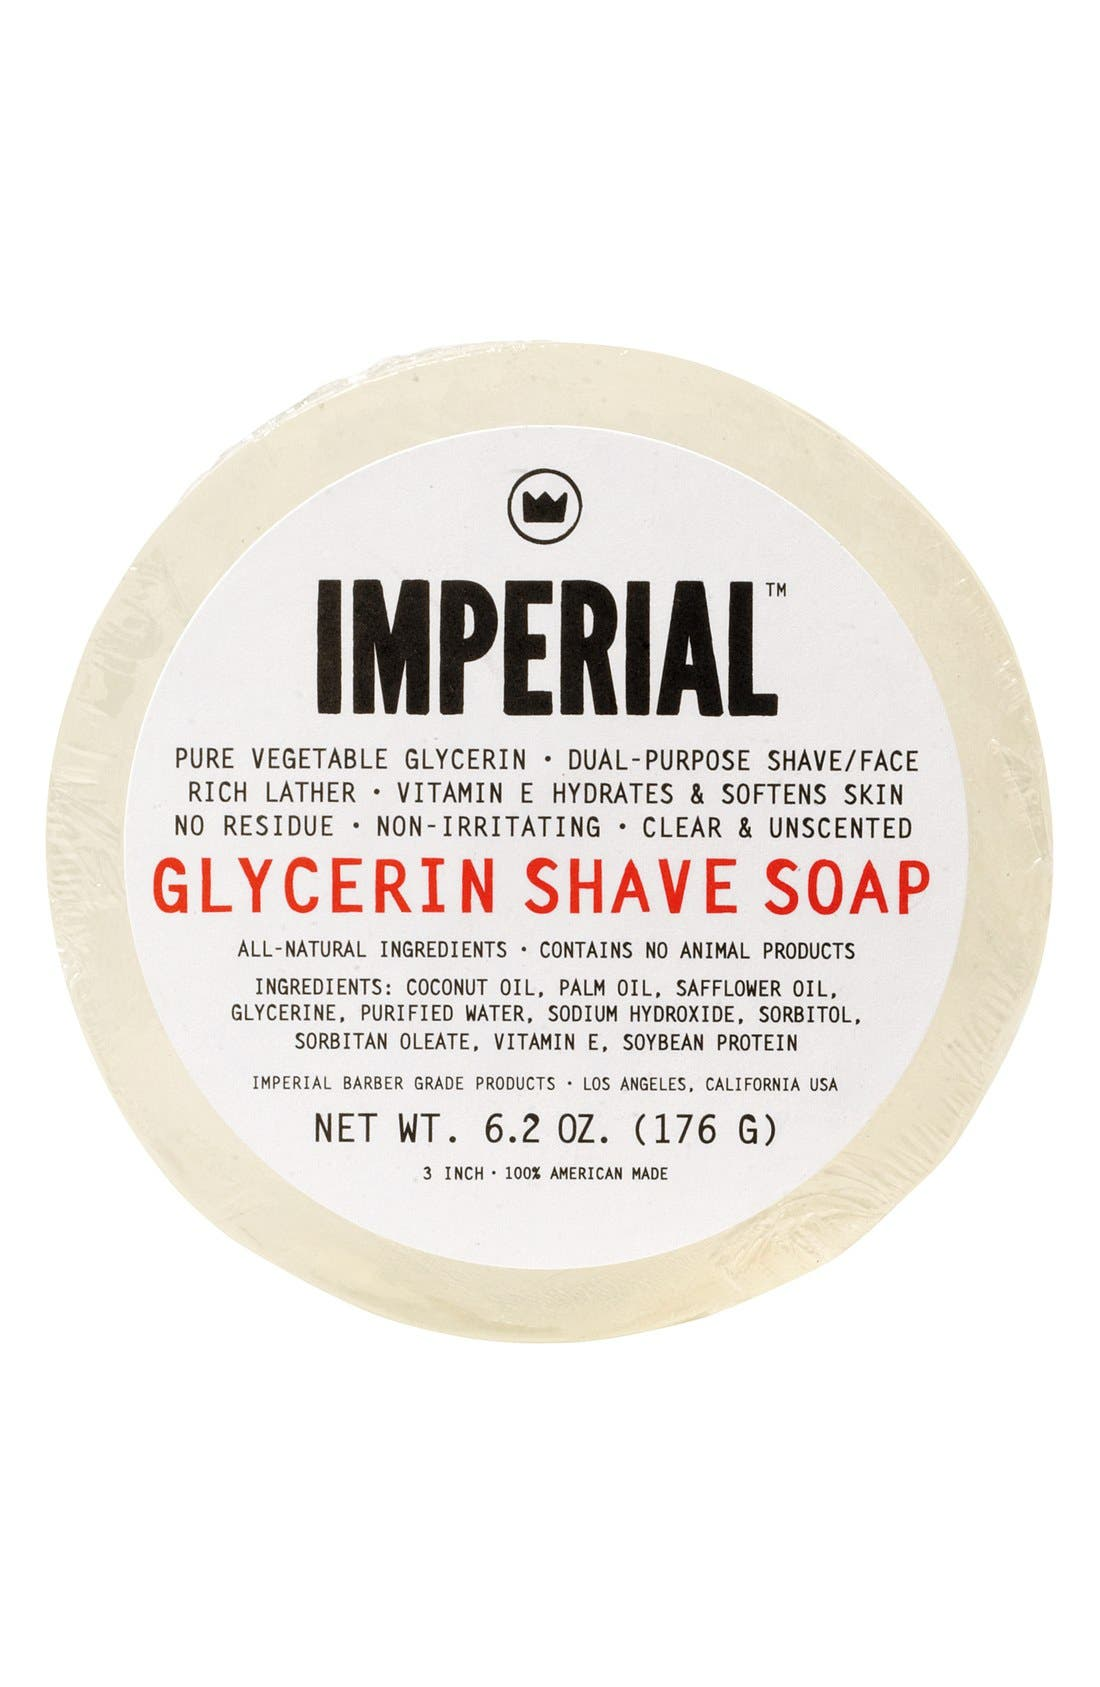 Imperial Barber Grade Products™ Glycerin Shave & Face Soap Puck